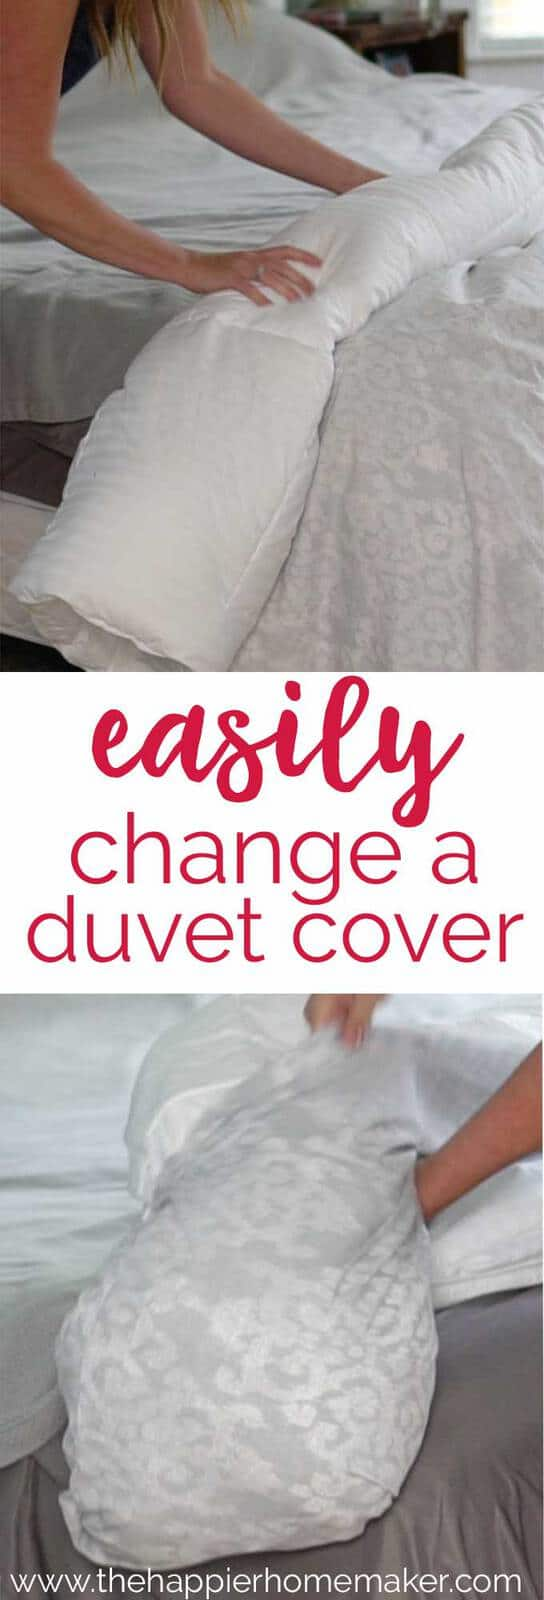 The secret to quickly and easily changing a duvet cover in just minutes-no more tugging covers and lumpy bedding!